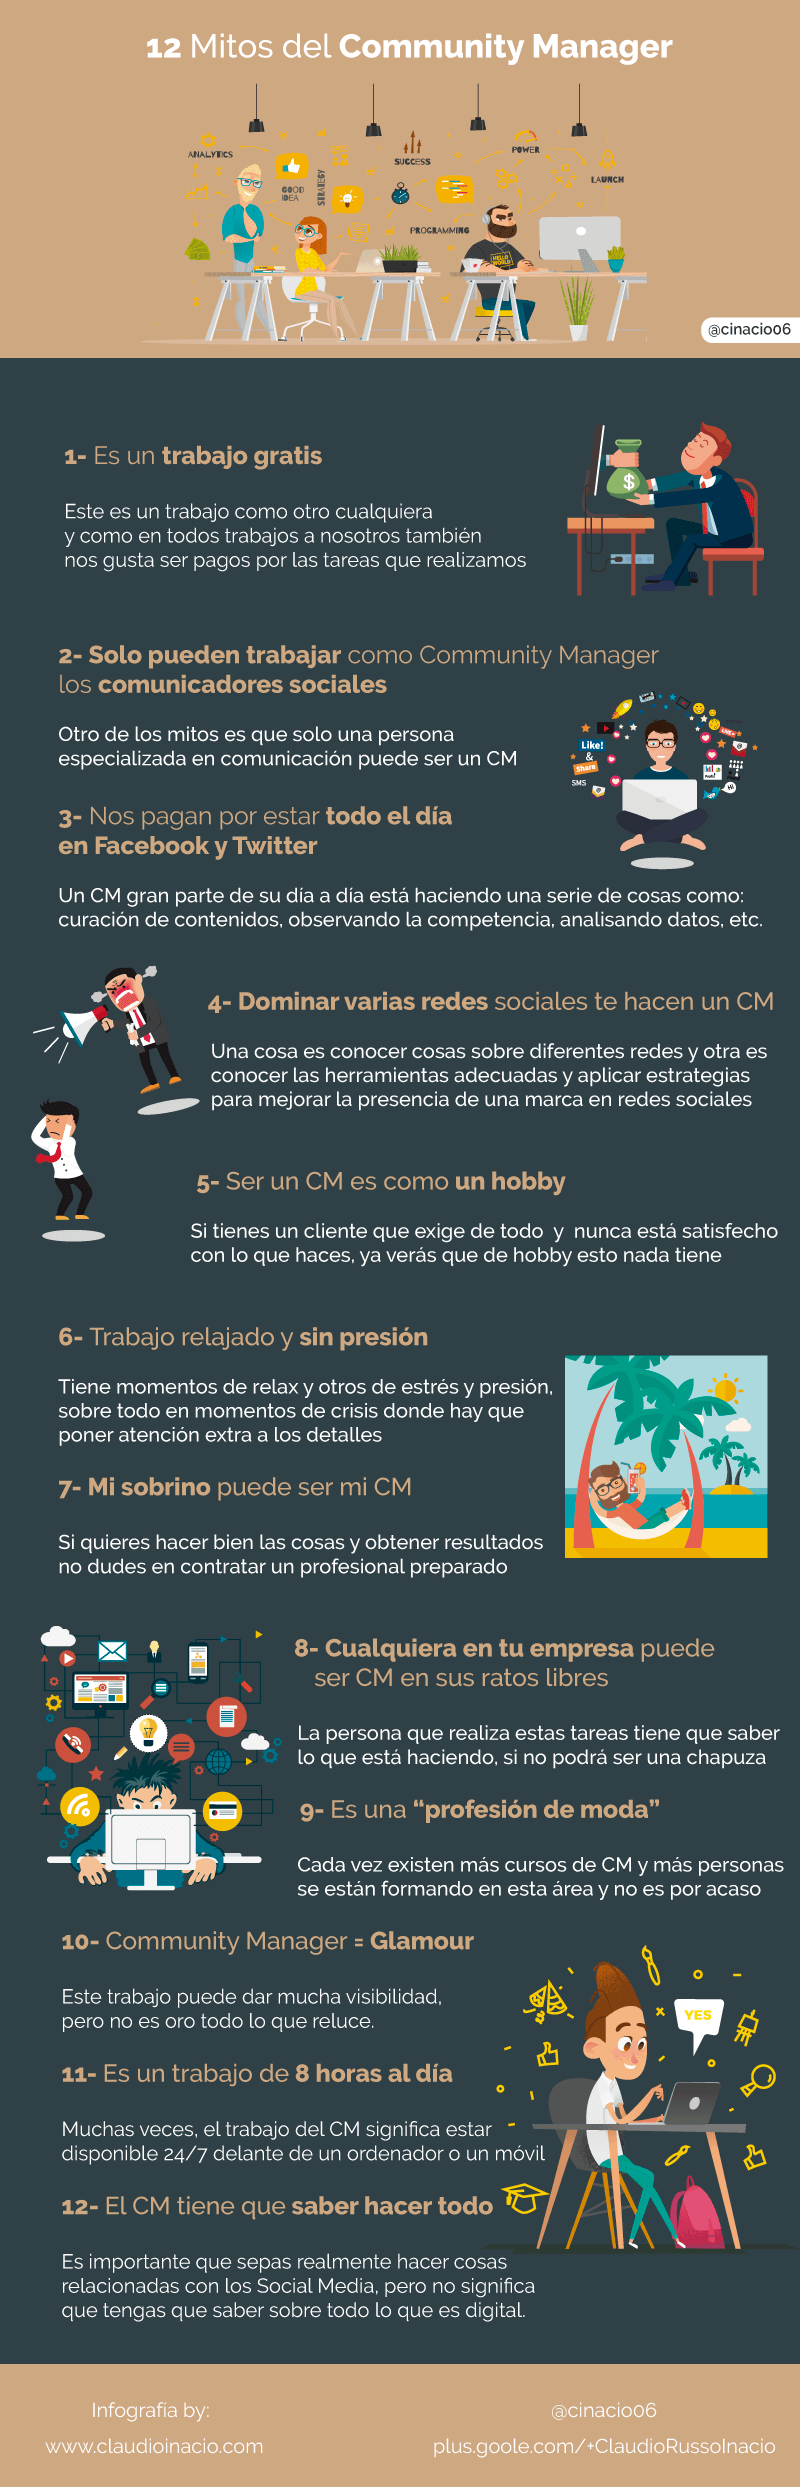 12 mitos sobe el Community Manager